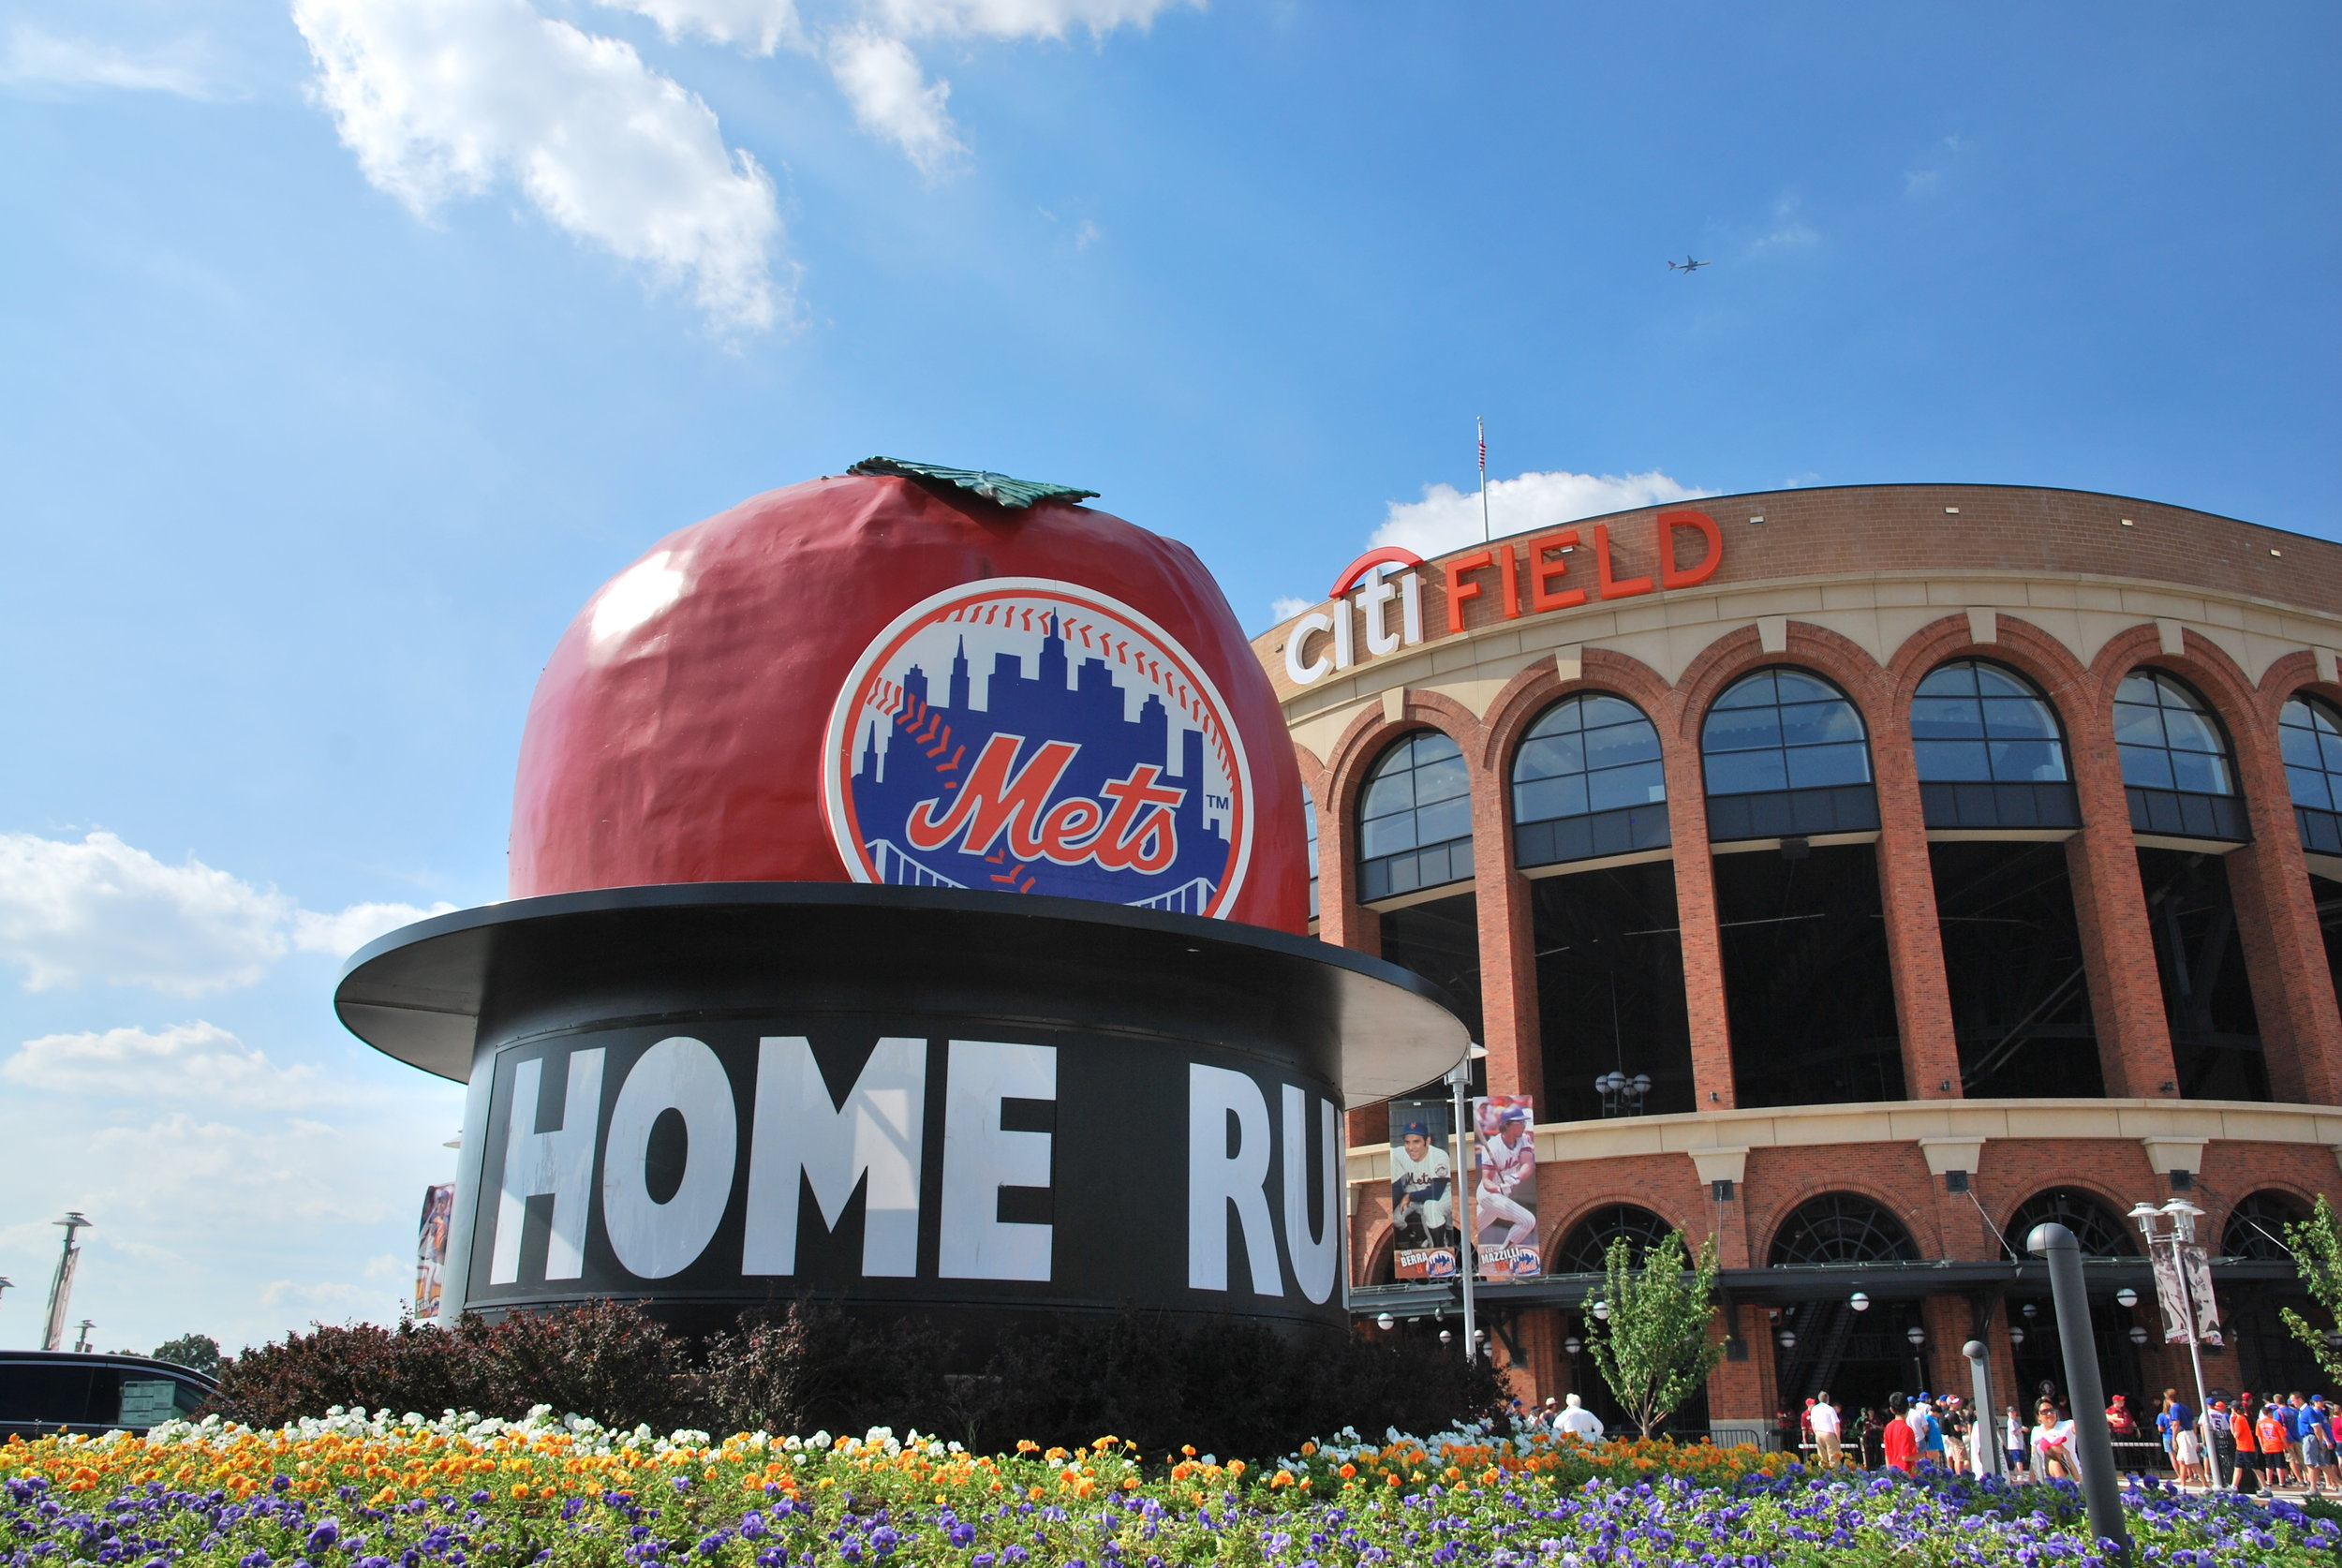 Citi Field hosted the Mets home opener on Thursday, but there's a lot more than baseball going on at the ballpark this spring. Photo by slgckgc/Flickr.